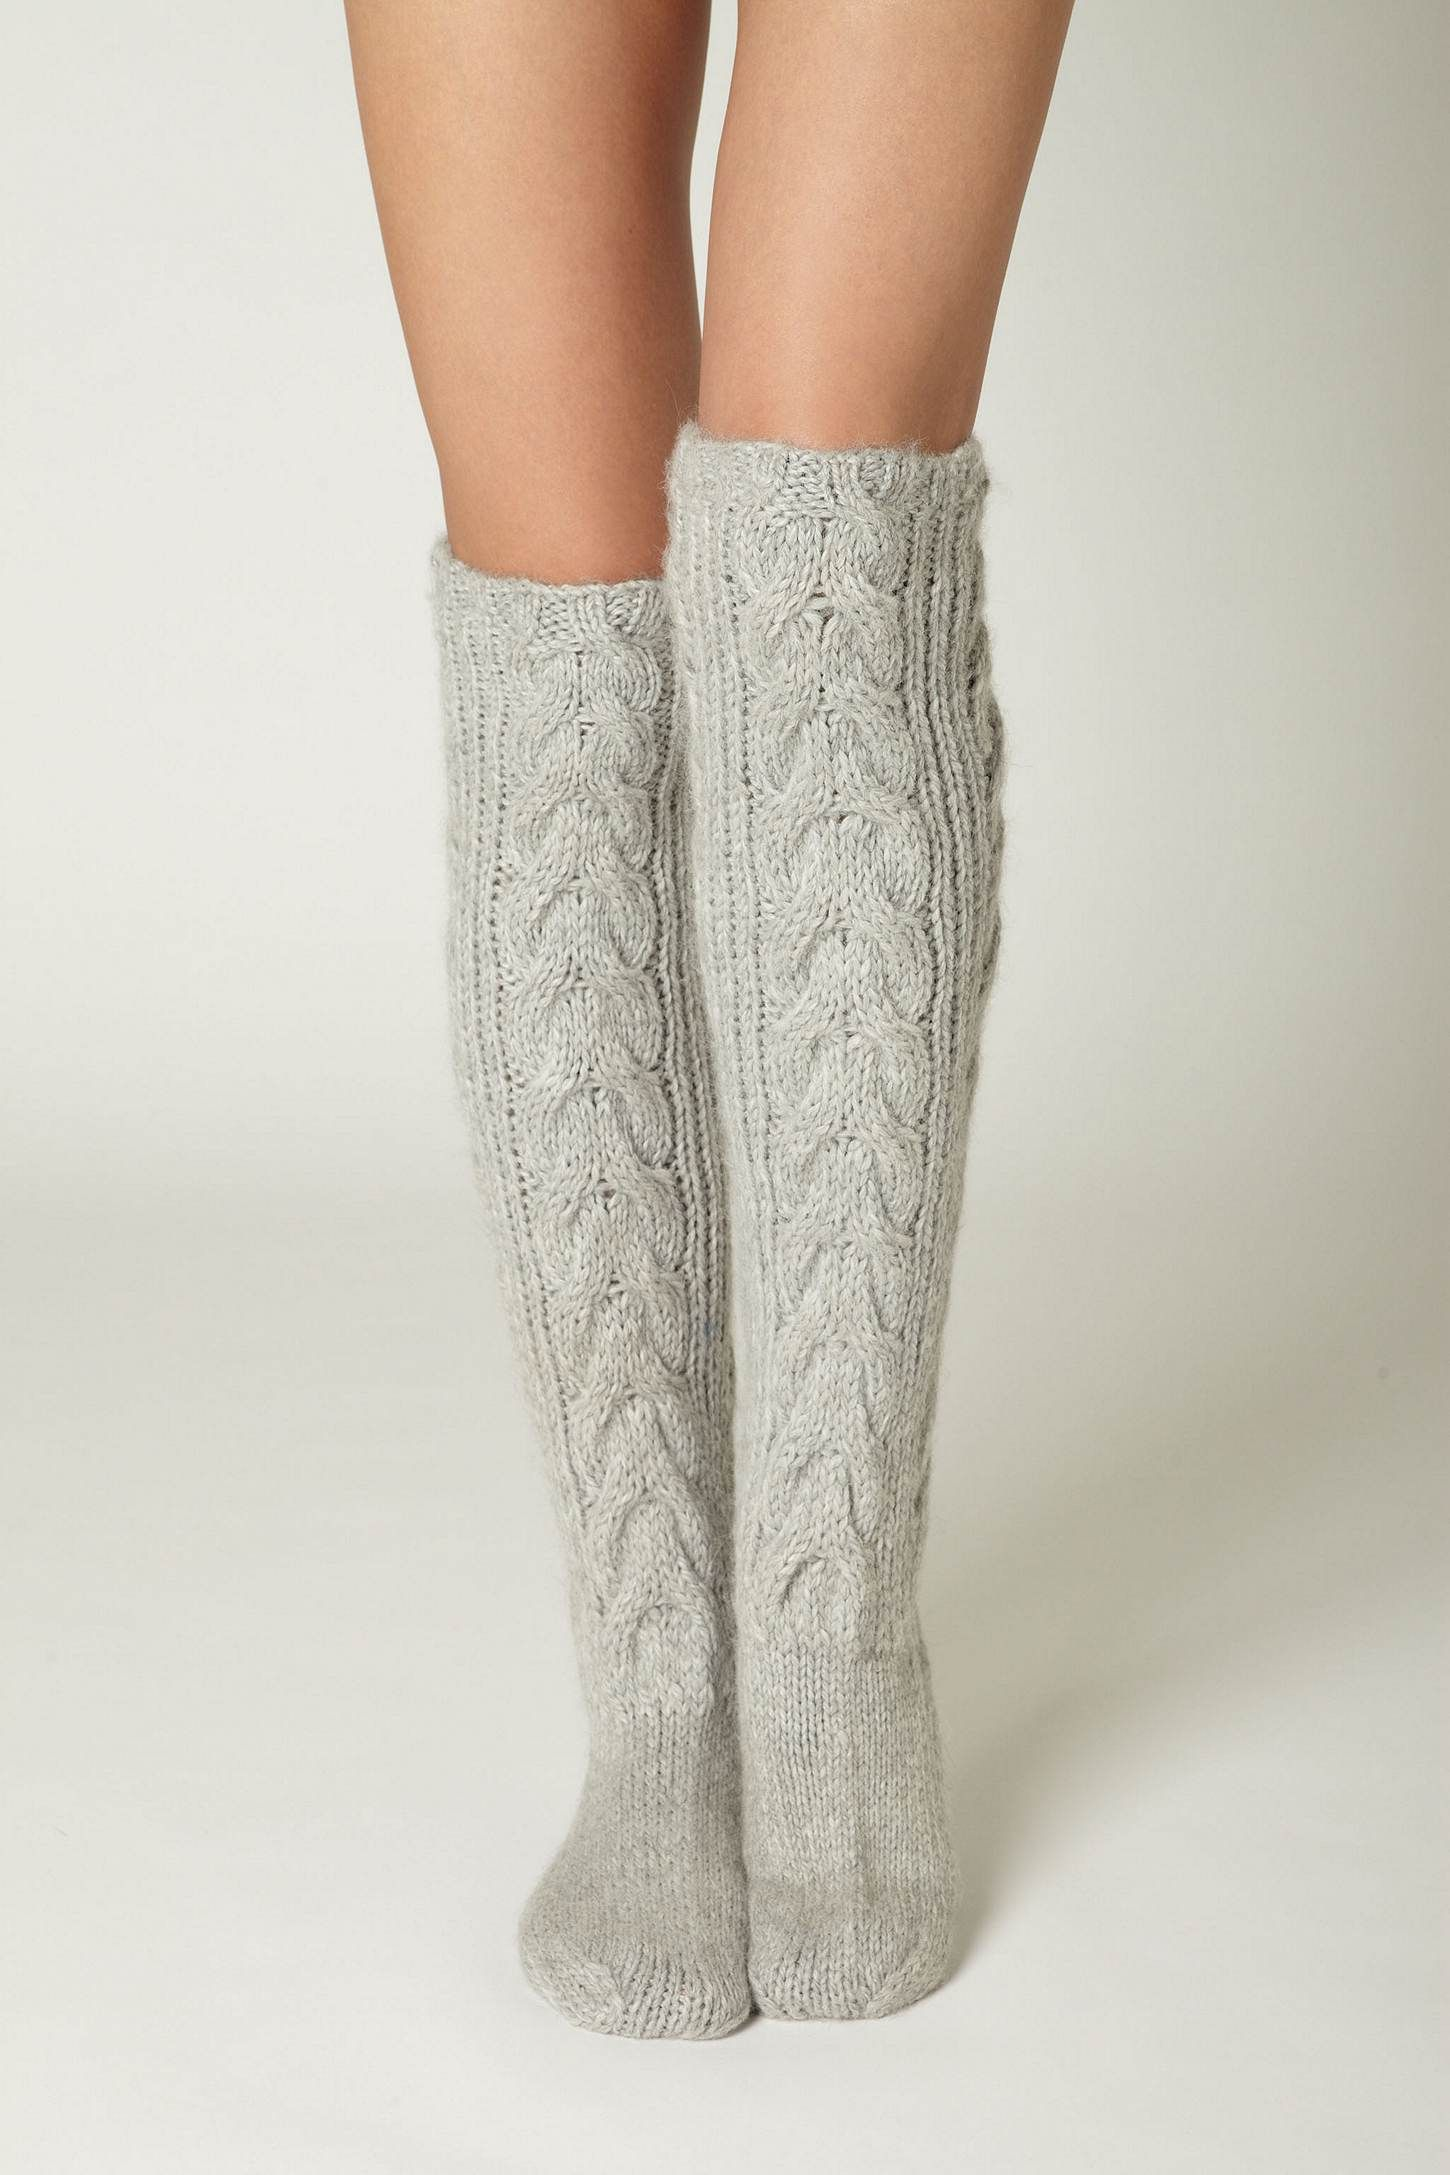 socks for boots